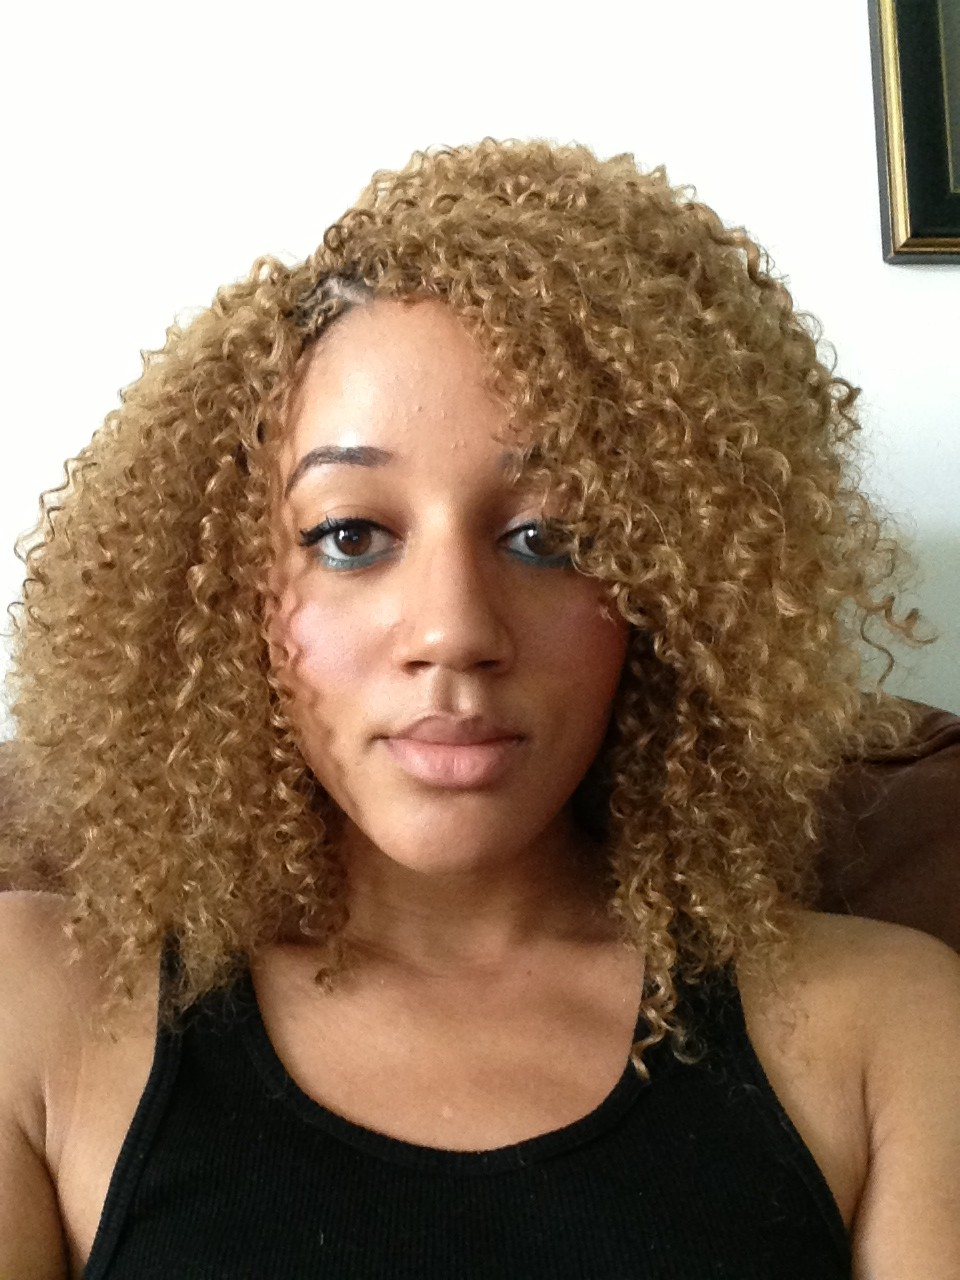 ... Chronicles: PhiPhi216 tries out Blonde Crochet Braids - TamThyme